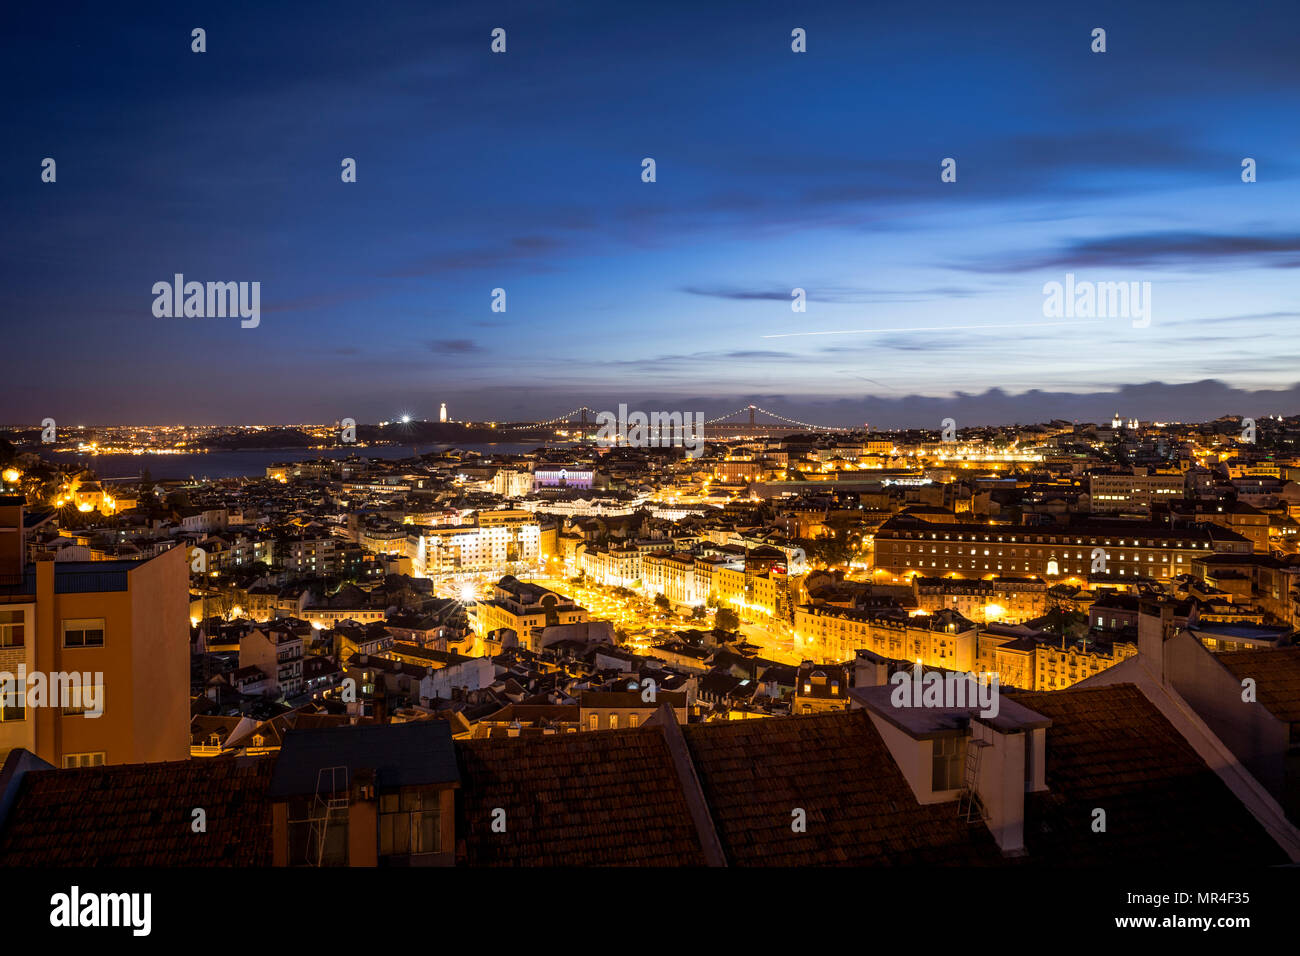 An evening view of the city looking towards the river in Lisbon, Portugal. Stock Photo